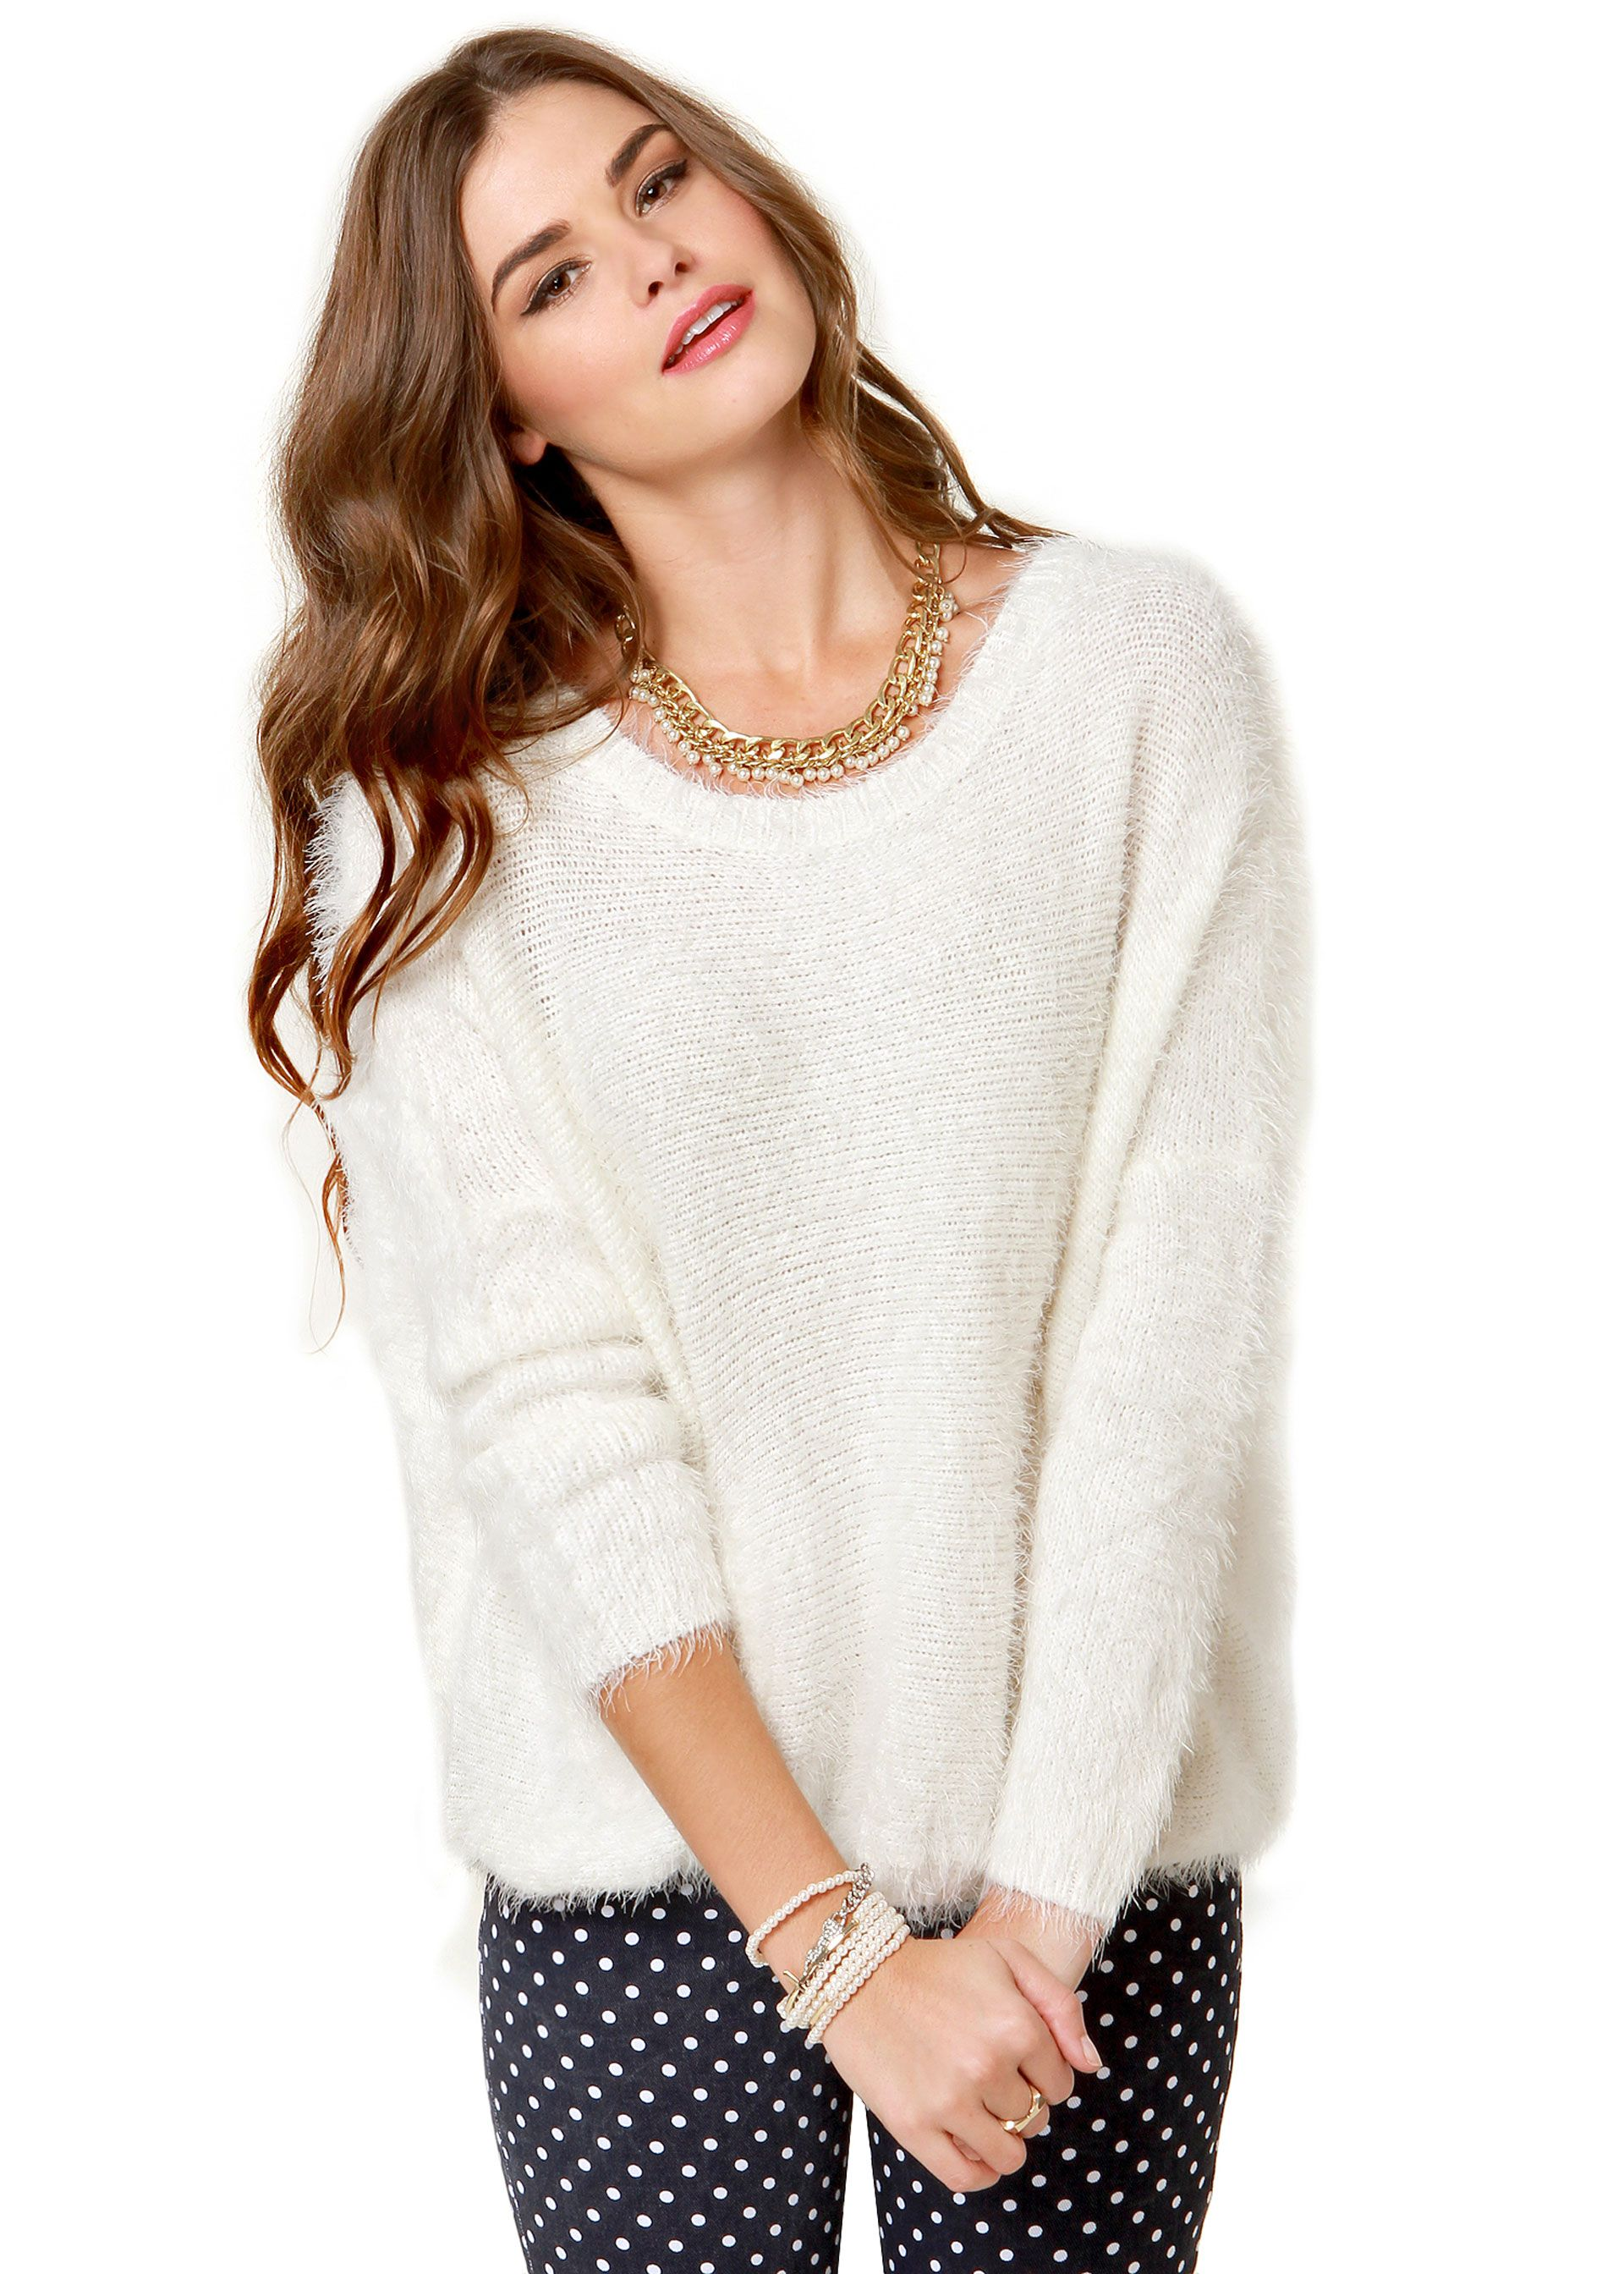 Comfy Cozy Winter Sweaters for Women - Warm Stylish Sweaters